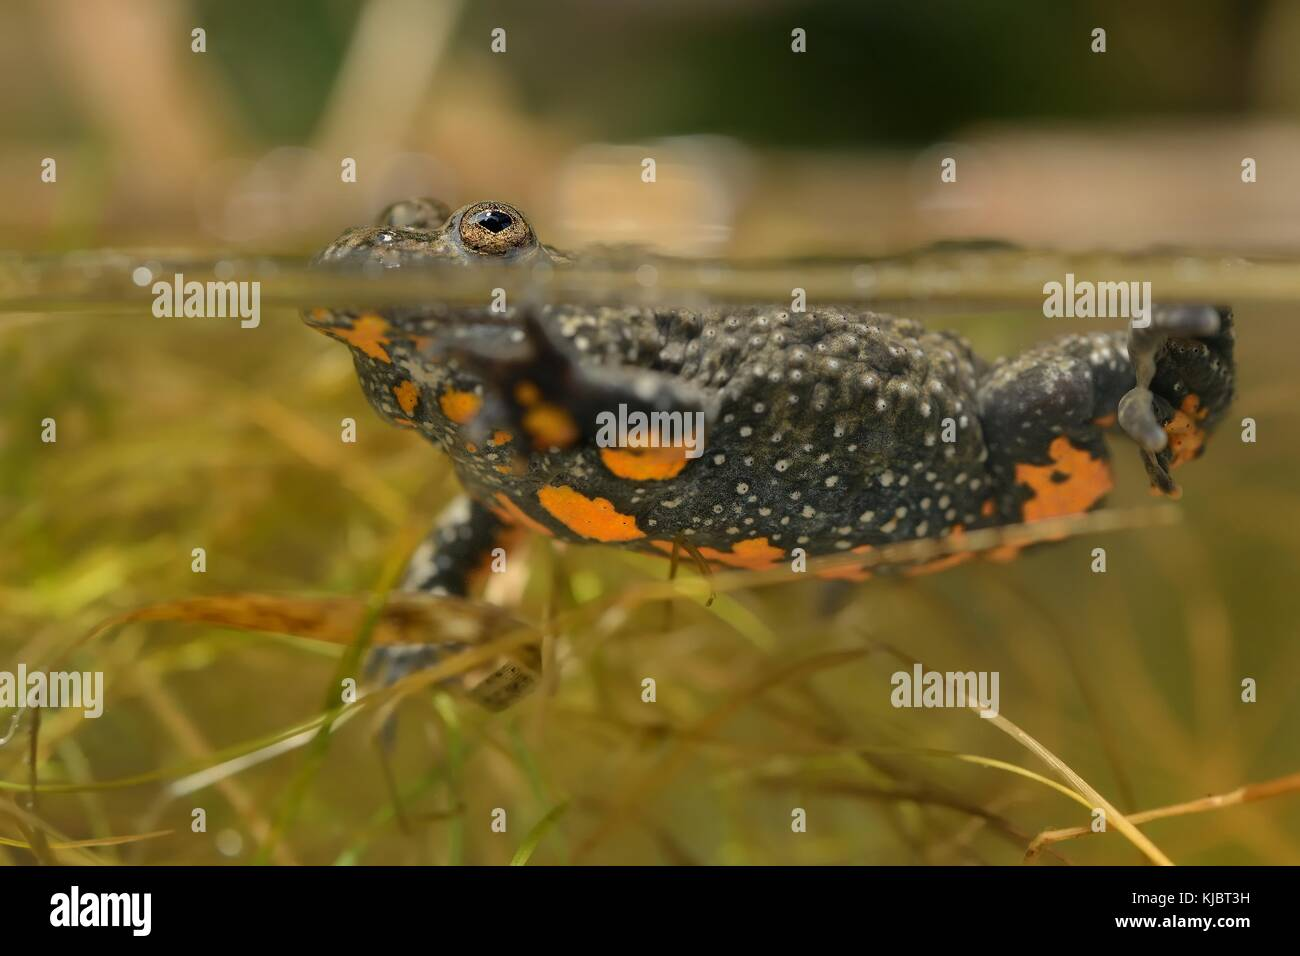 Fire-bellied Toad under water in the lagoon. - Stock Image